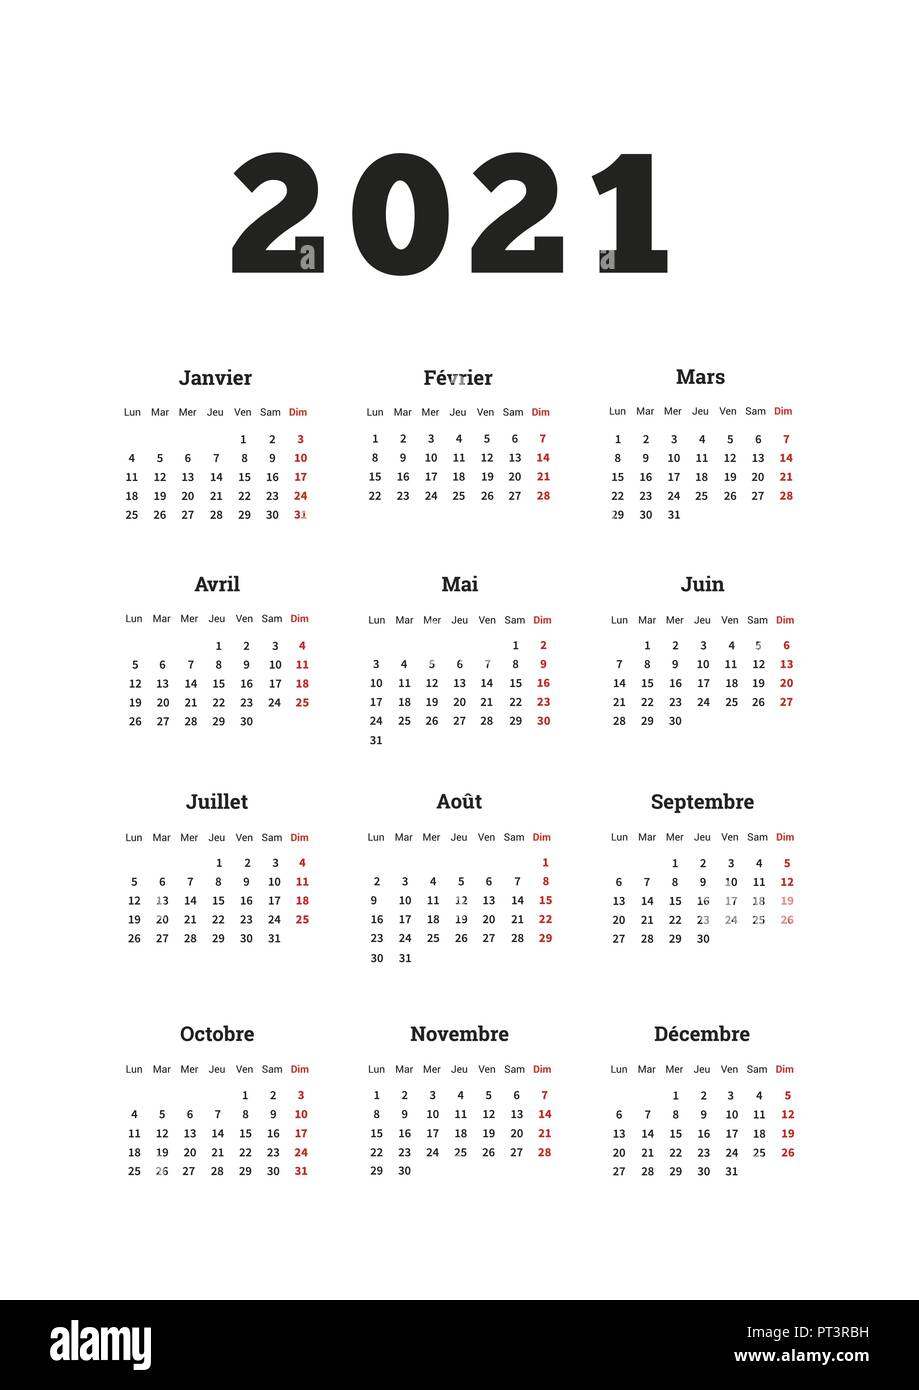 2021 year simple calendar on french language, A4 size vertical